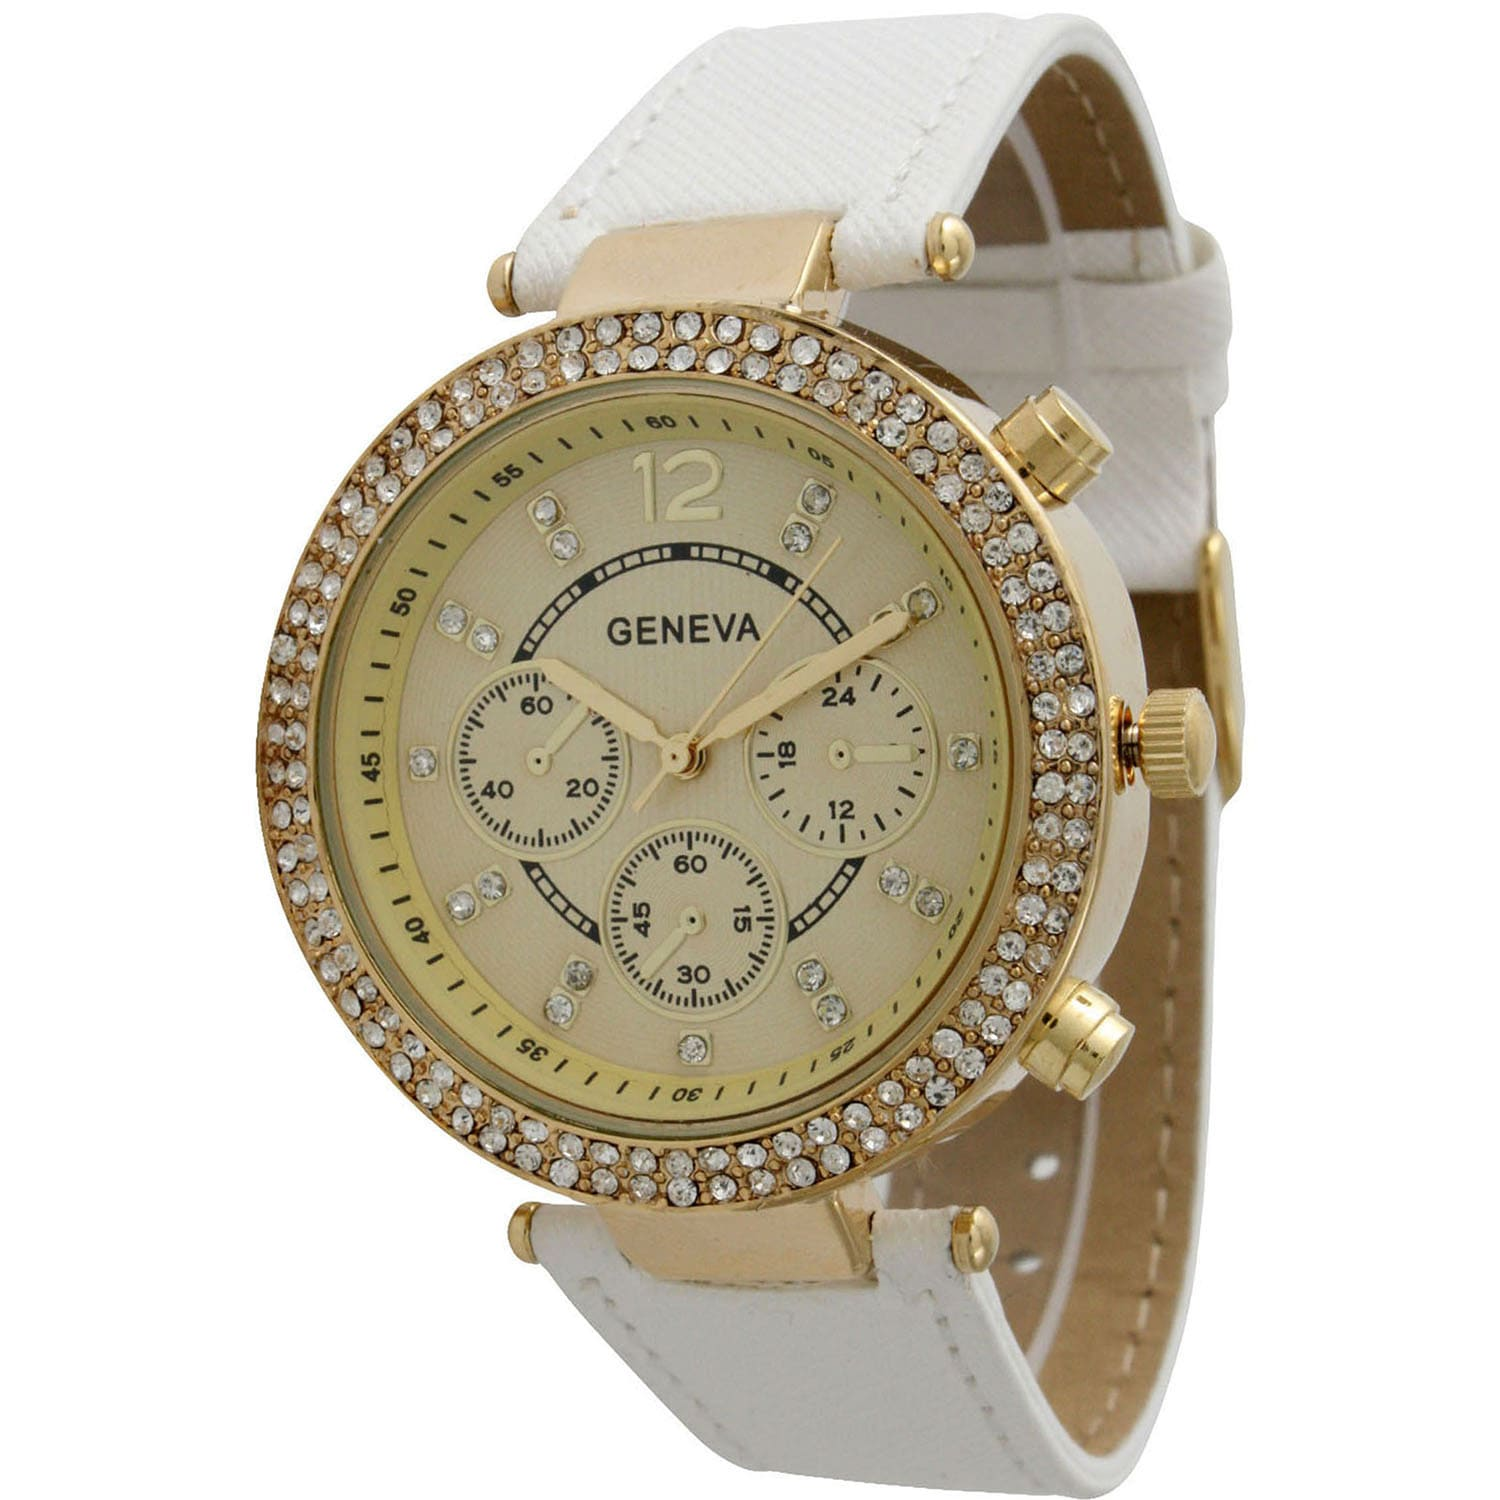 Jewelryamp; Shop Best Our Black At Deals Overstock WatchesDiscover pzqMGSUV